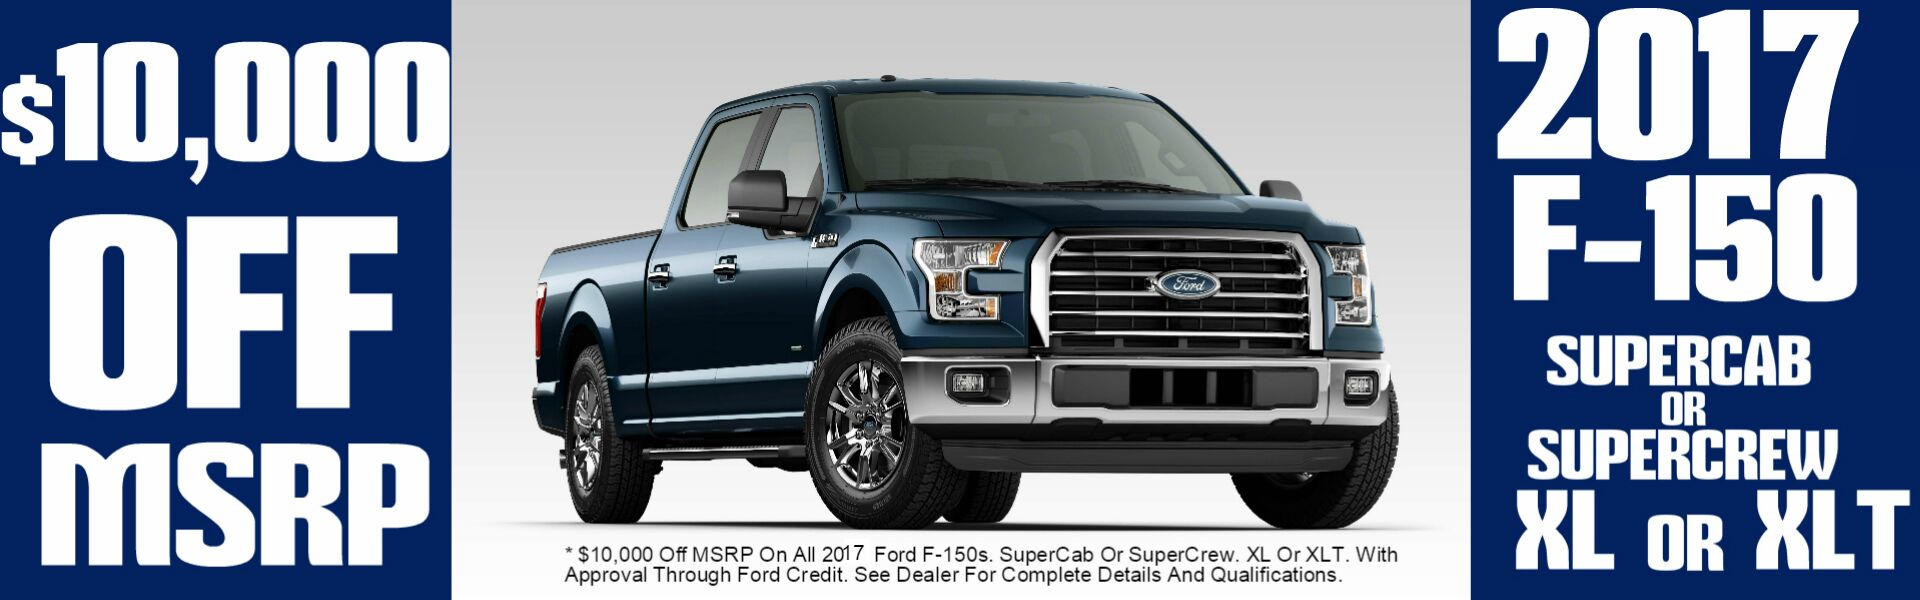 Donnell Ford Banner April 2017 Ford F150 Buy